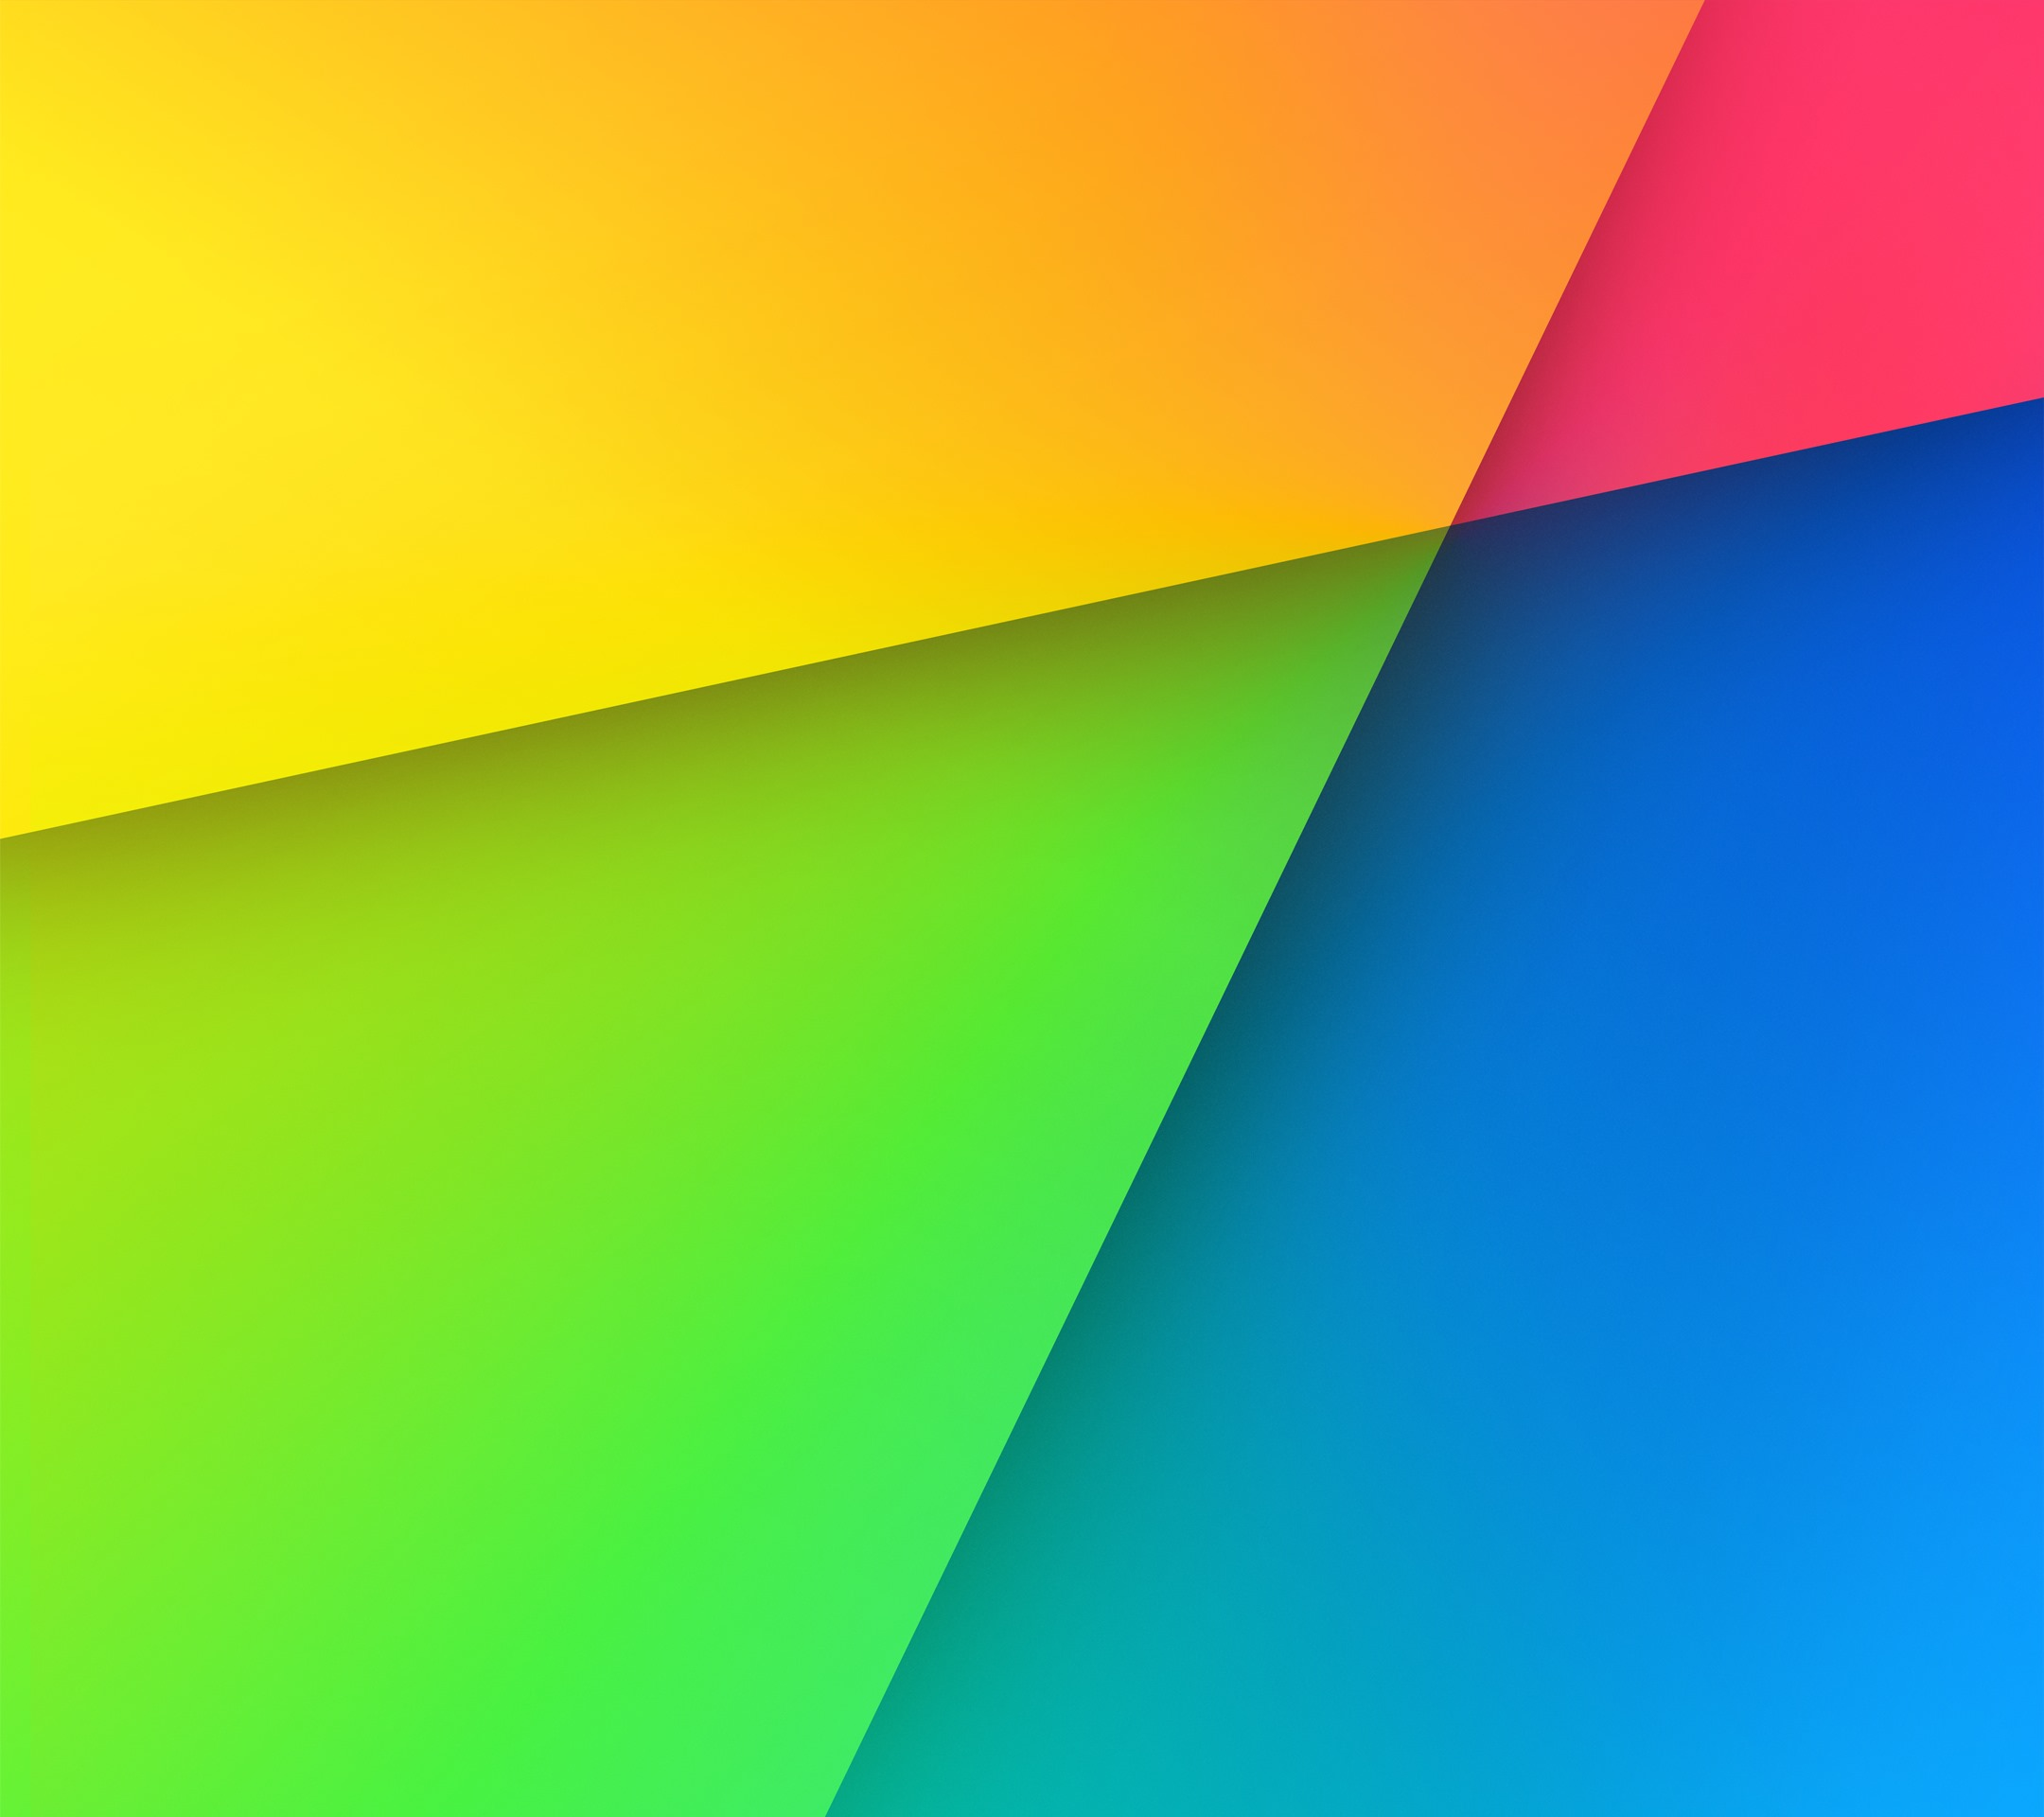 Nexus 7 2013 Wallpaper Size